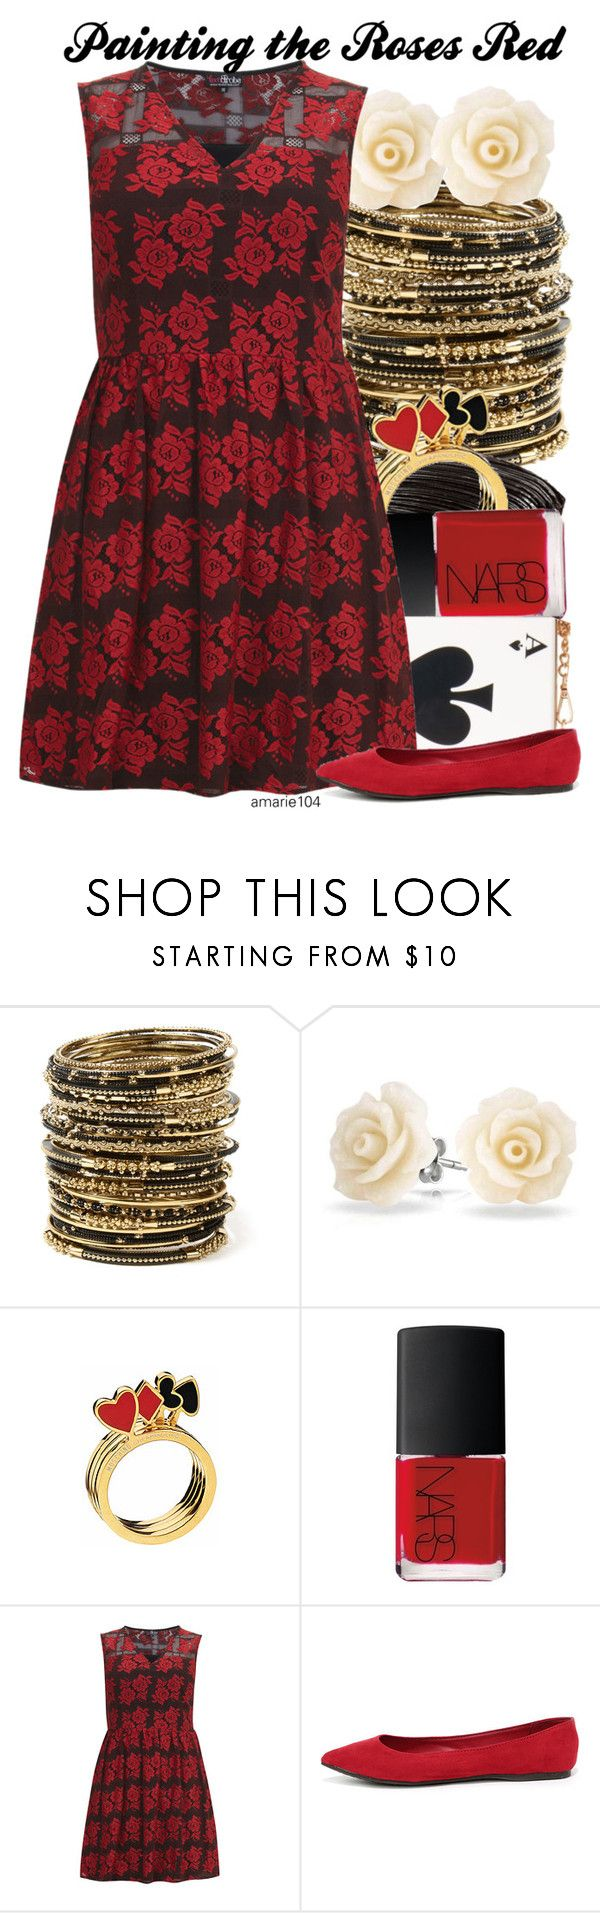 """""""Painting the Roses Red"""" by amarie104 ❤ liked on Polyvore featuring Amrita Singh, Bling Jewelry, Moschino, NARS Cosmetics, Dorothy Perkins and Breckelle's"""